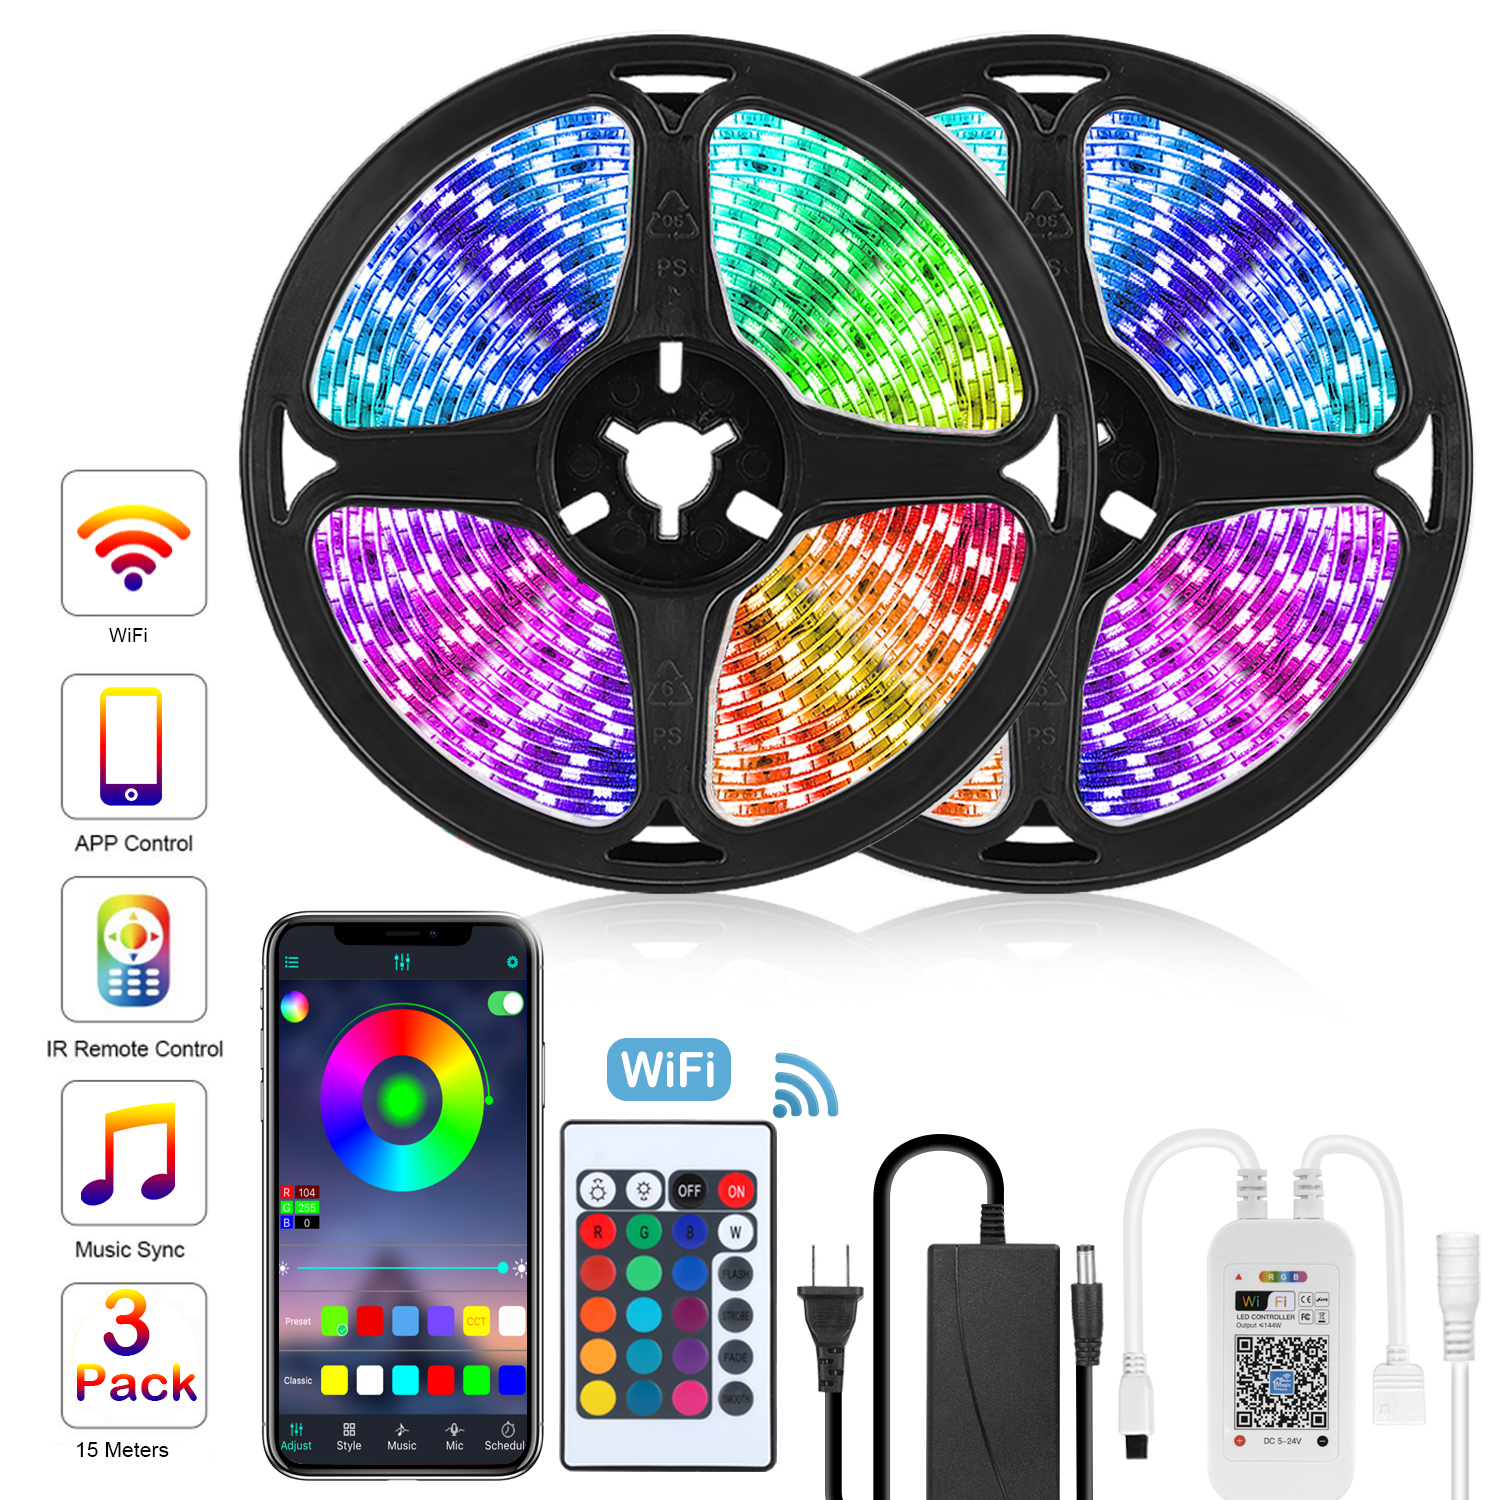 Permalink to Goodland LED Strip 12V Ribbon LED Lights Strip RGB Tape 5050 2835 Flexible 5M 10M Diode Tape with WiFi Remote LED Light for Room